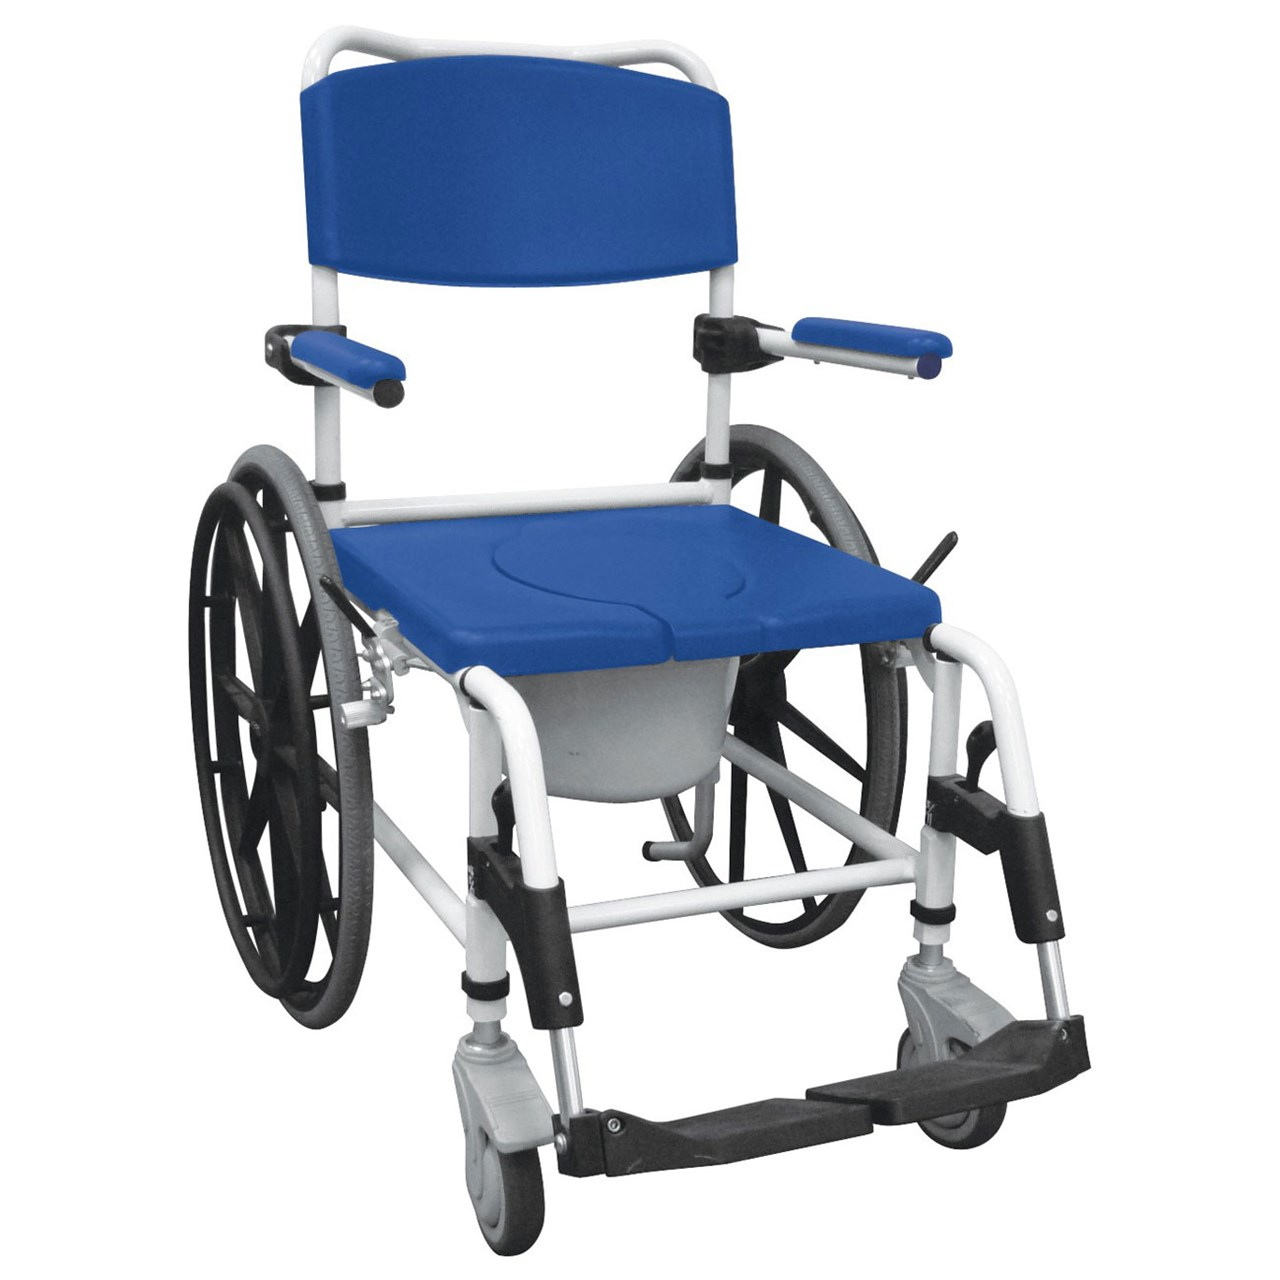 Maxiaids Aluminum Rehab Shower Commode Chair With 24